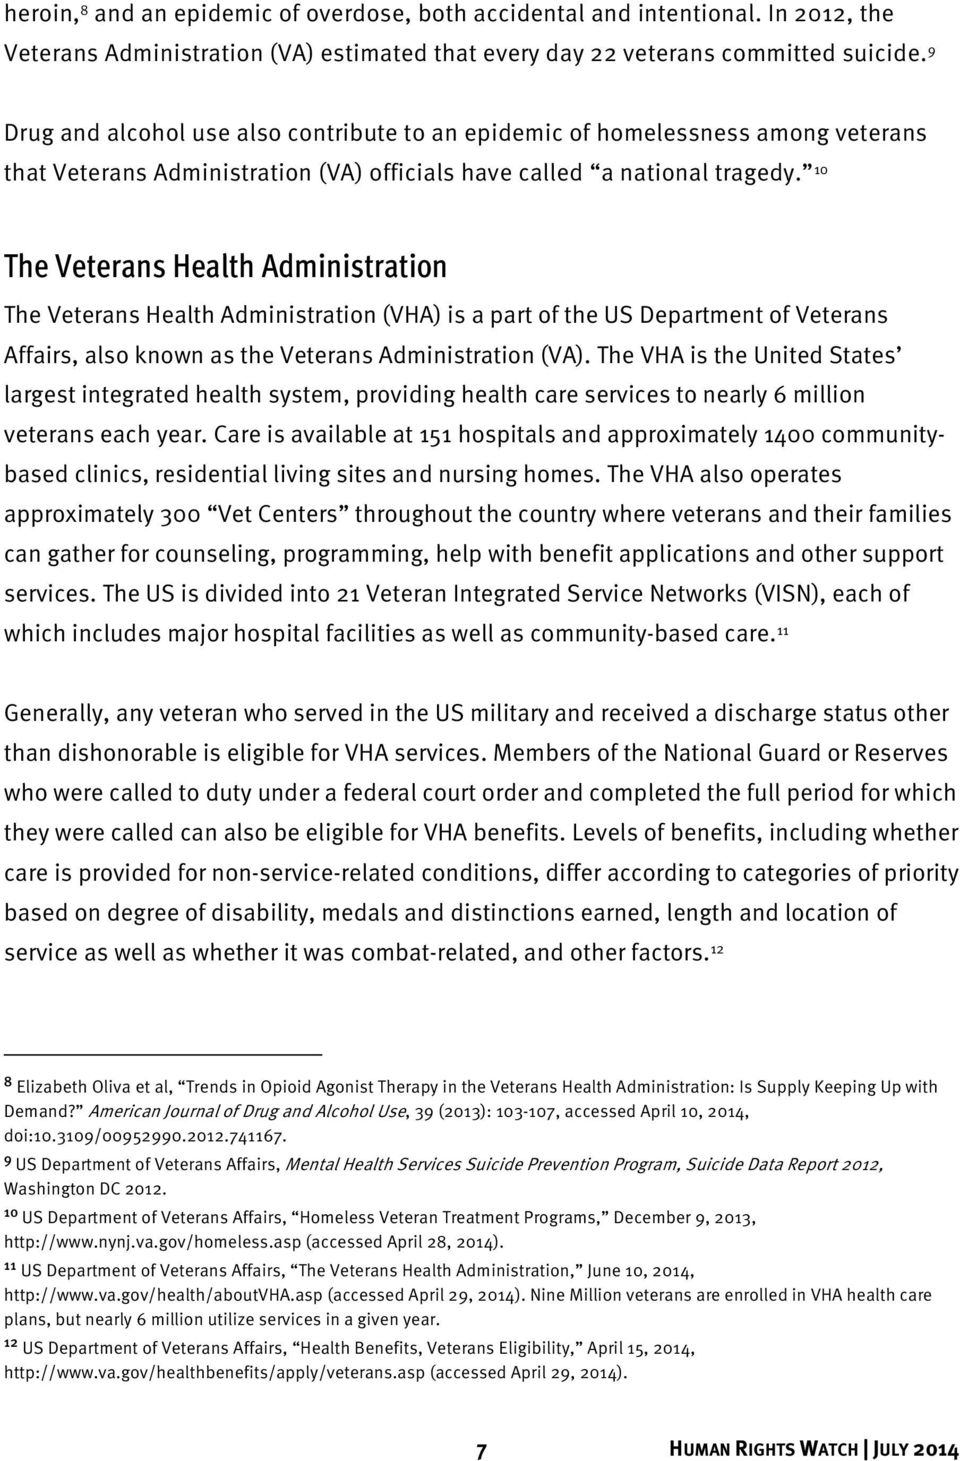 10 The Veterans Health Administration The Veterans Health Administration (VHA) is a part of the US Department of Veterans Affairs, also known as the Veterans Administration (VA).